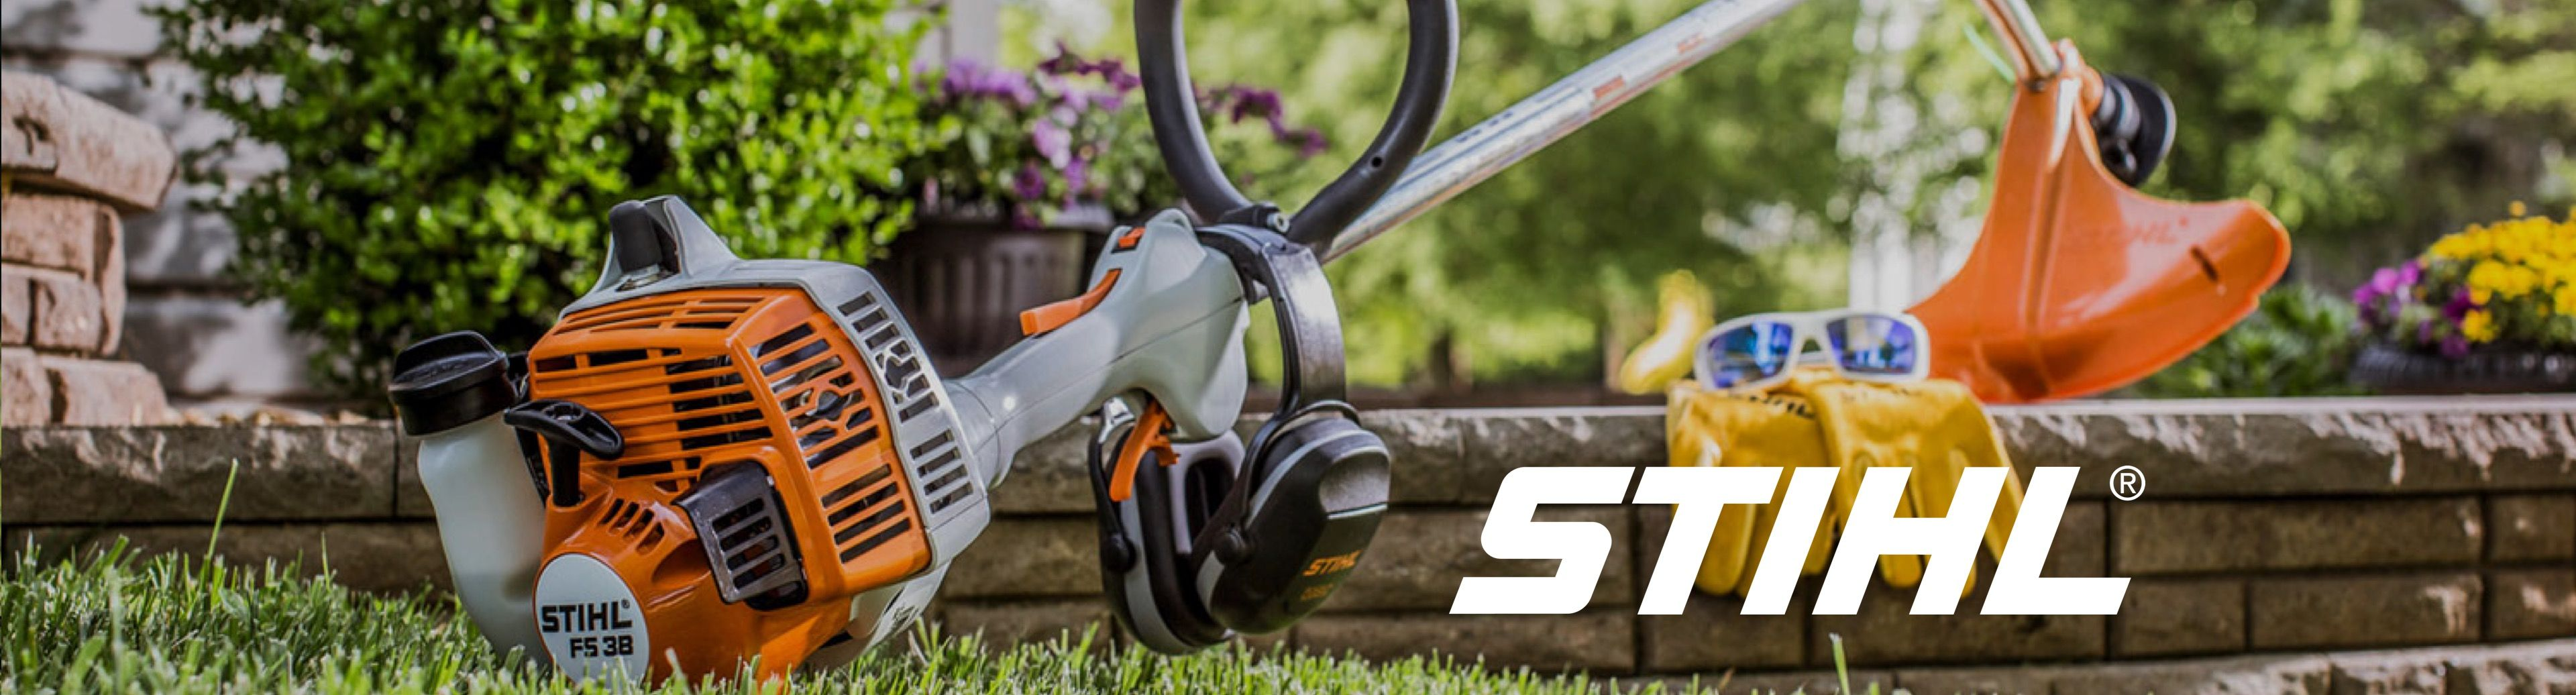 Shop Stihl power equipment at Walts Hardware